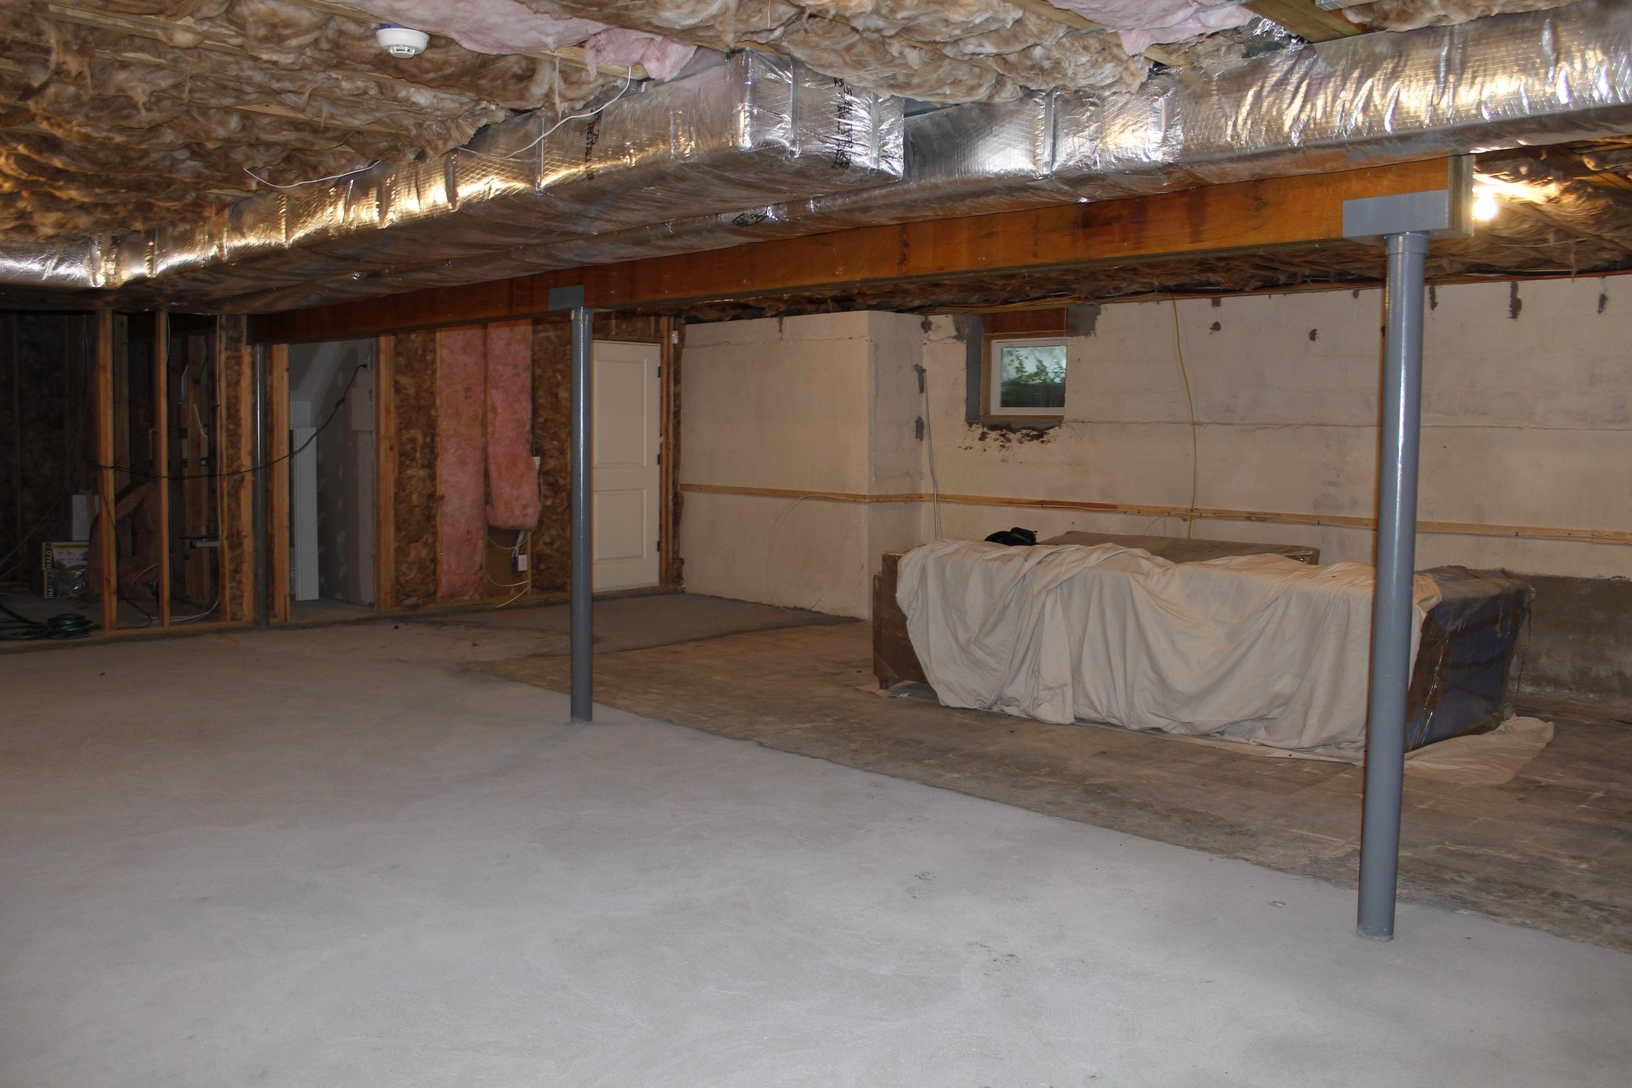 Stunning Bangor, ME Basement Remodel - Before Photo